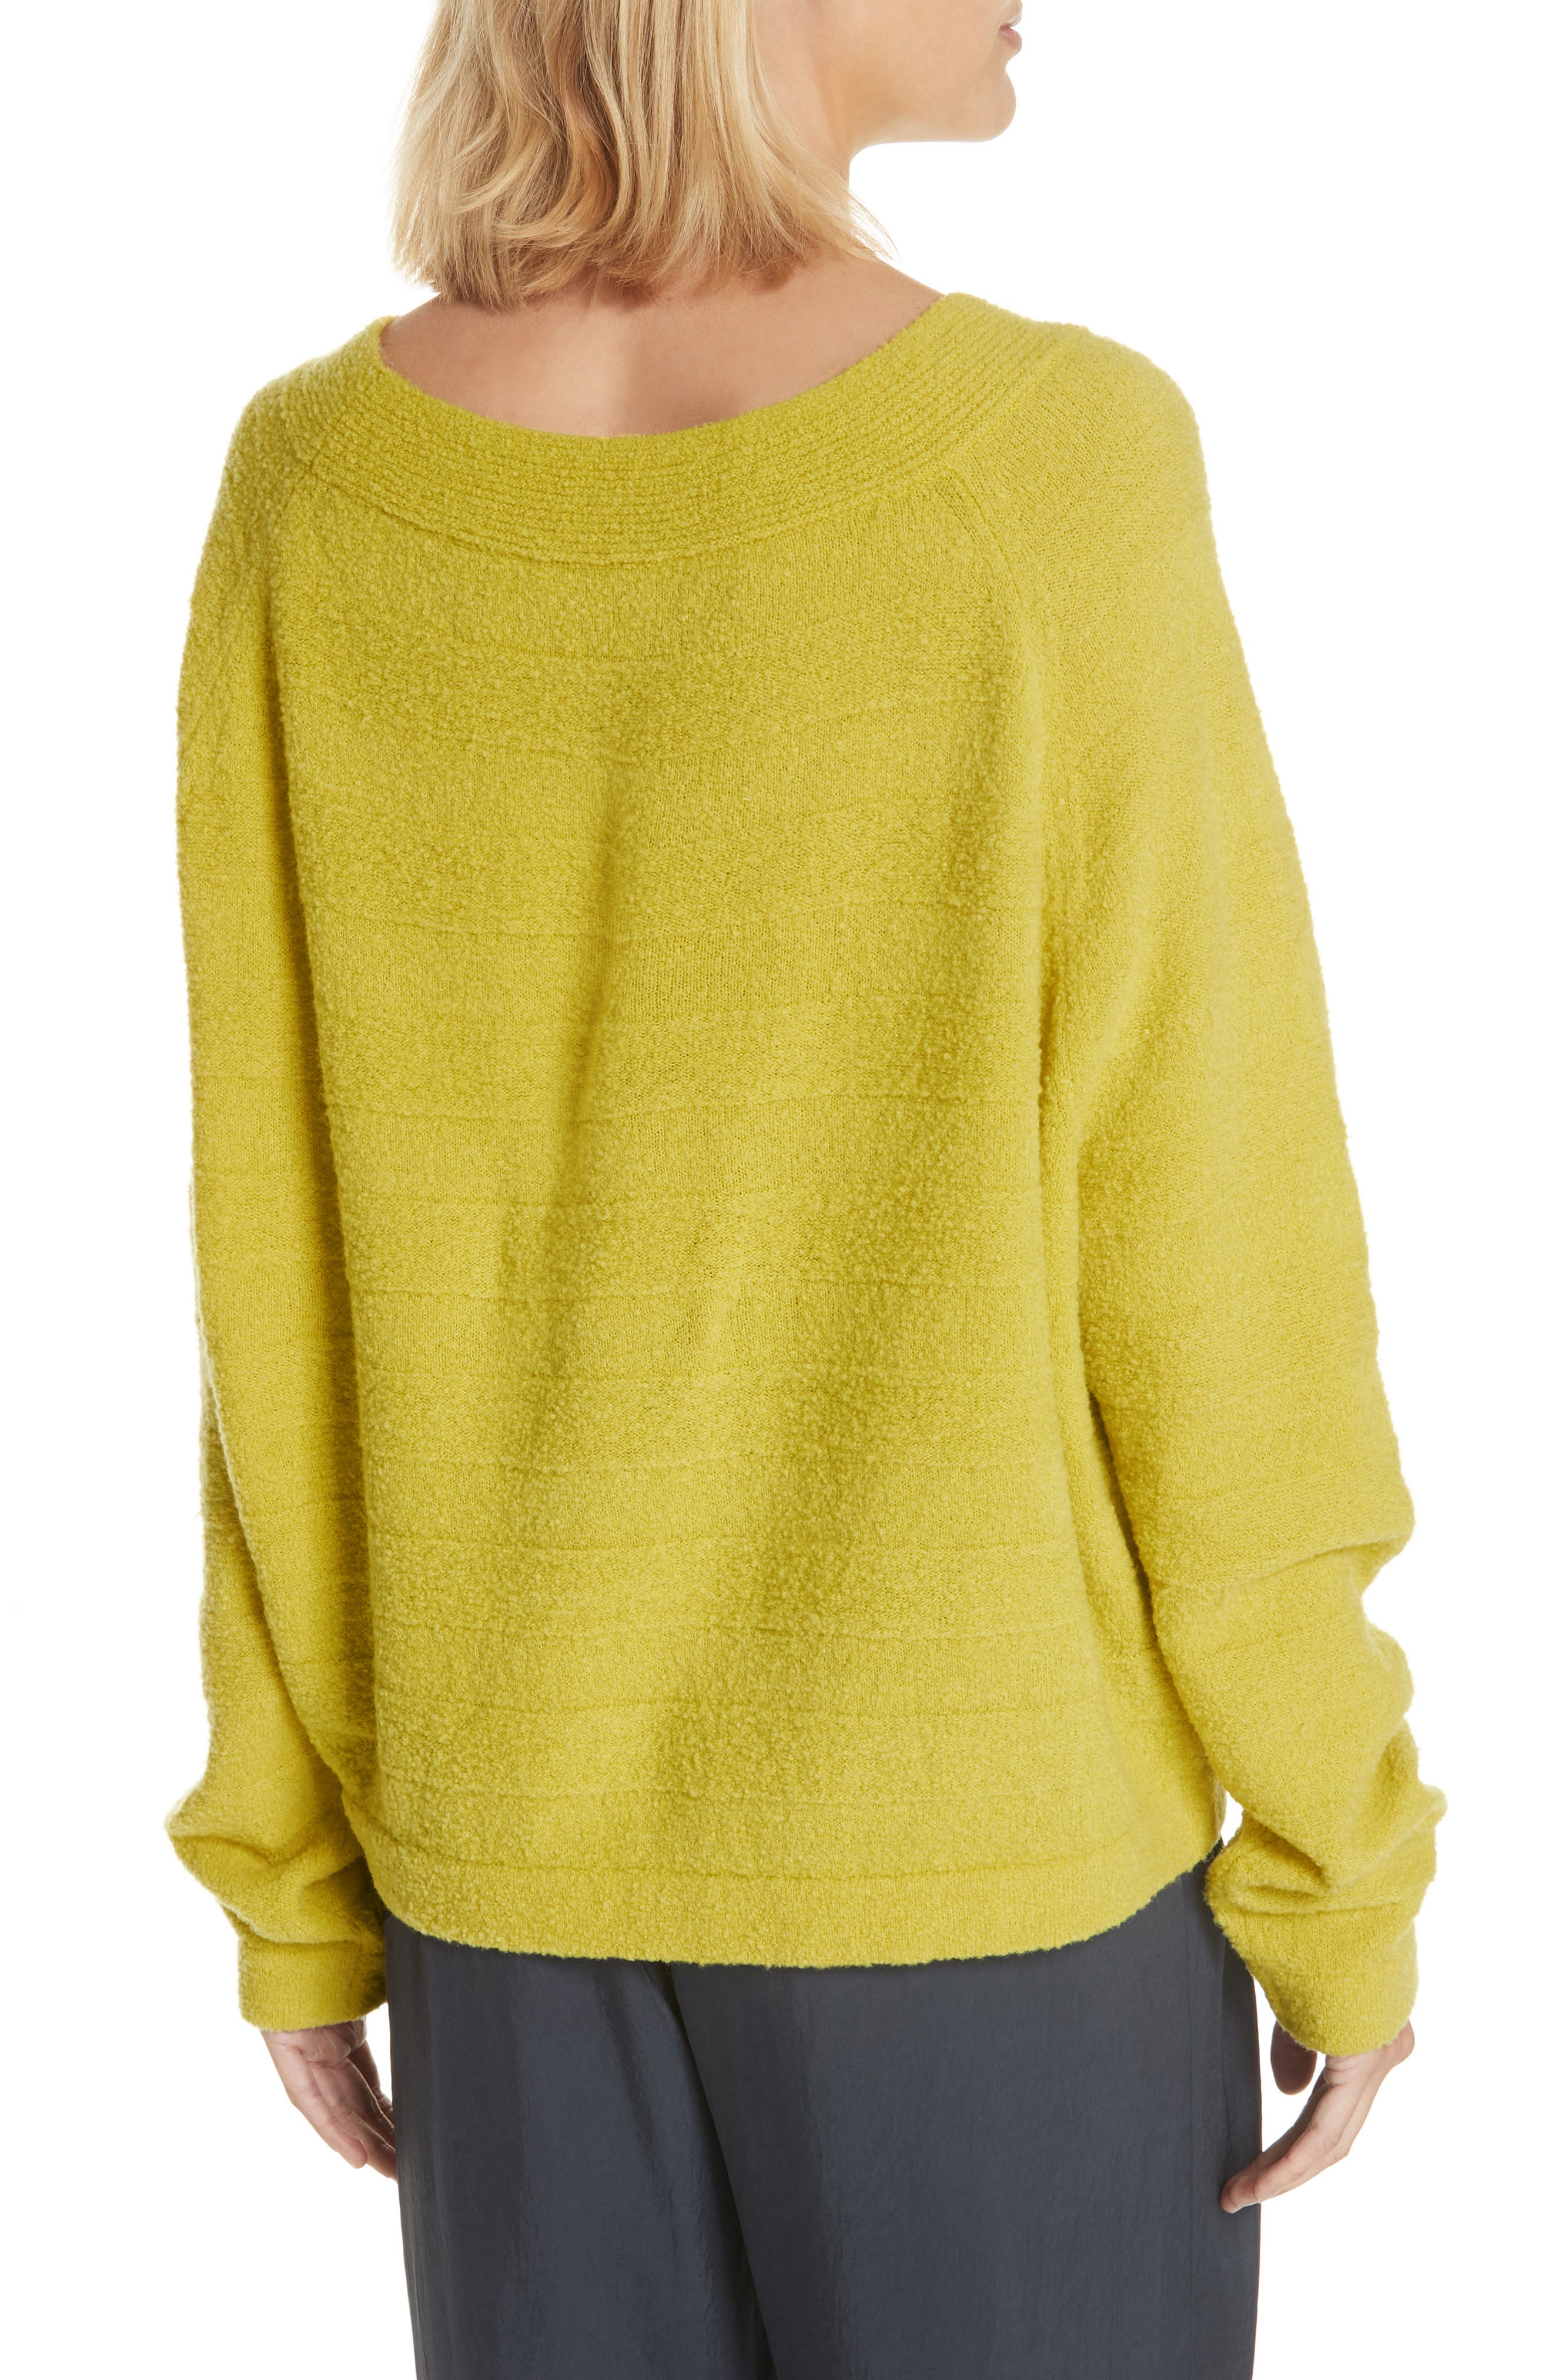 Merino Wool Blend Knit Sweater,                             Alternate thumbnail 2, color,                             750